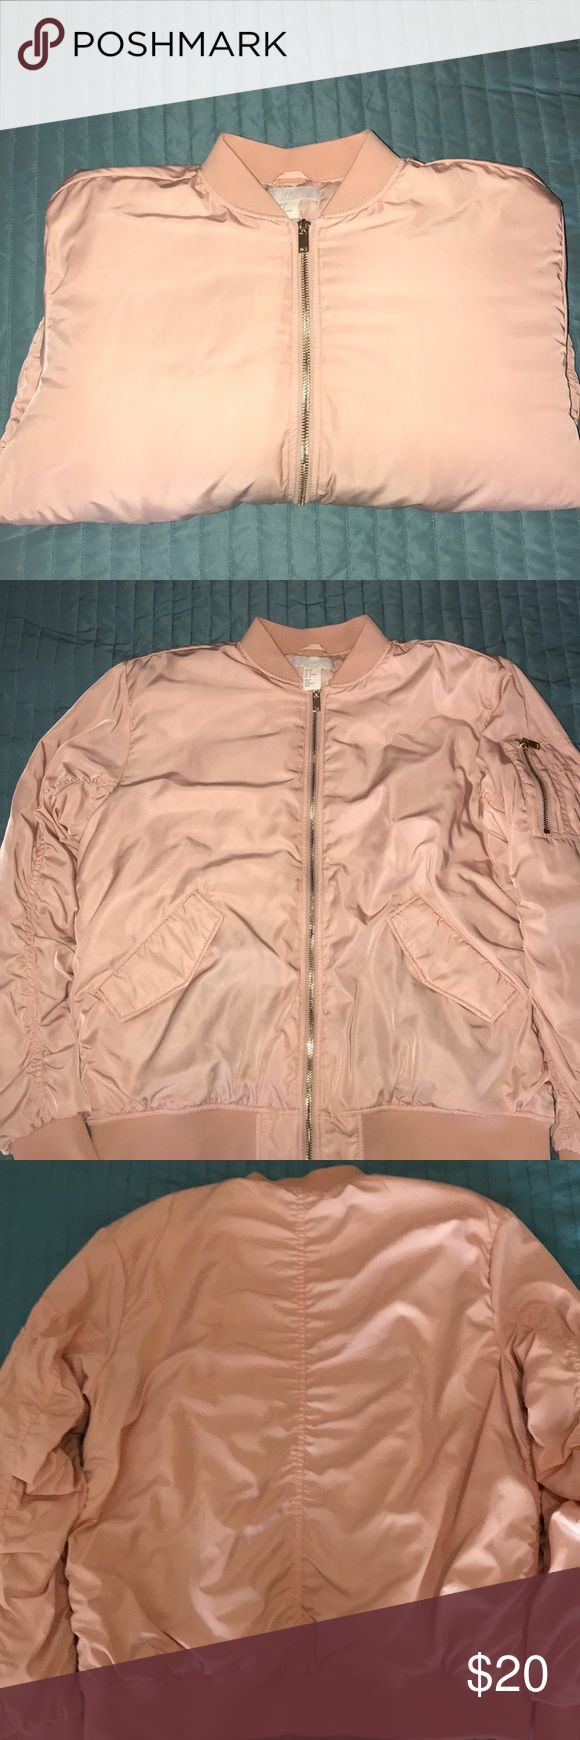 Pink Bomber Jacket Brand new, never worn, and in perfect condition bomber jacket  Light pink with gold detail. Size 8 (Fits like a medium) From H&M H&M Jackets & Coats